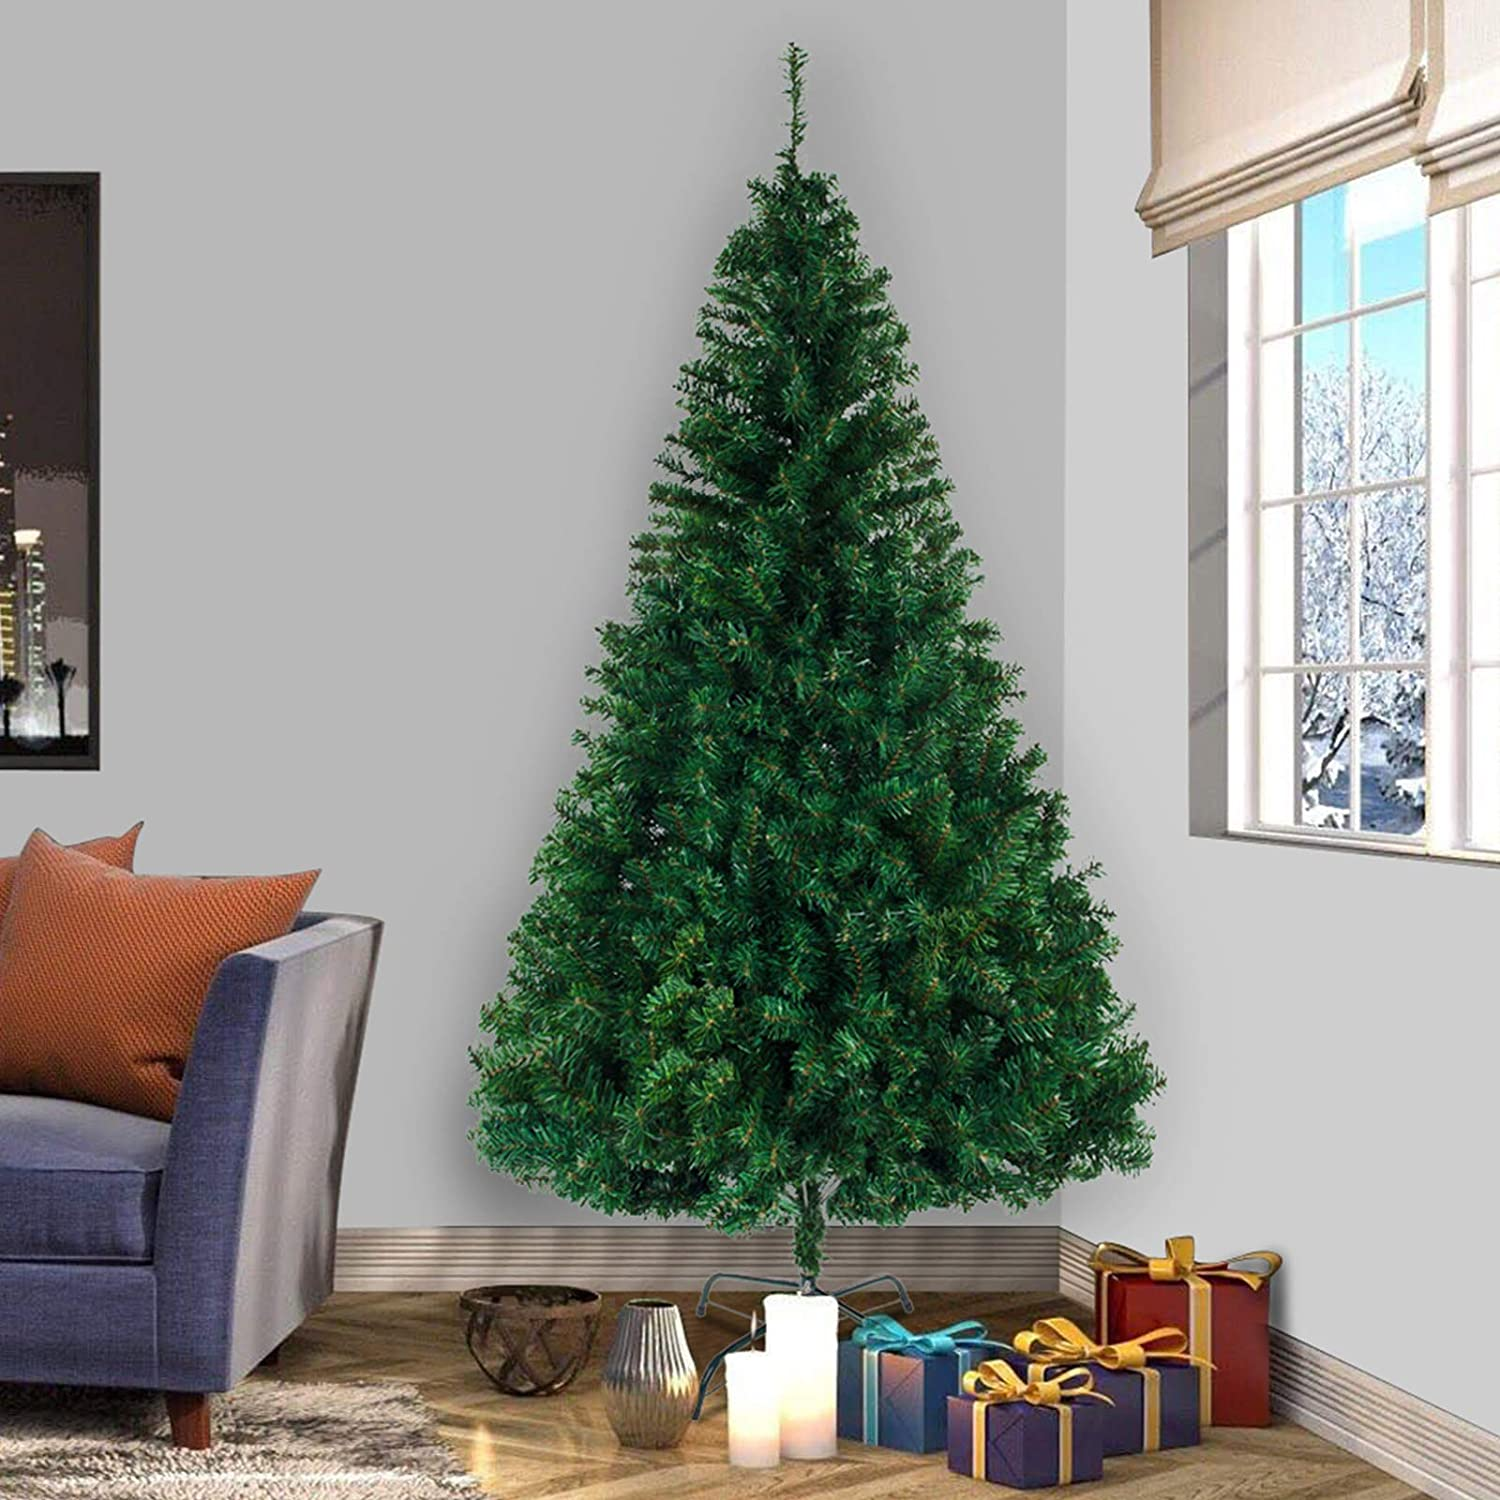 NMFIN Artificial Christmas Tree, 8 ft Premium PVC Hinged Spruce Xmas Tree, Foldable Metal Stand, Perfect Decor for Indoor & Outdoor, Green